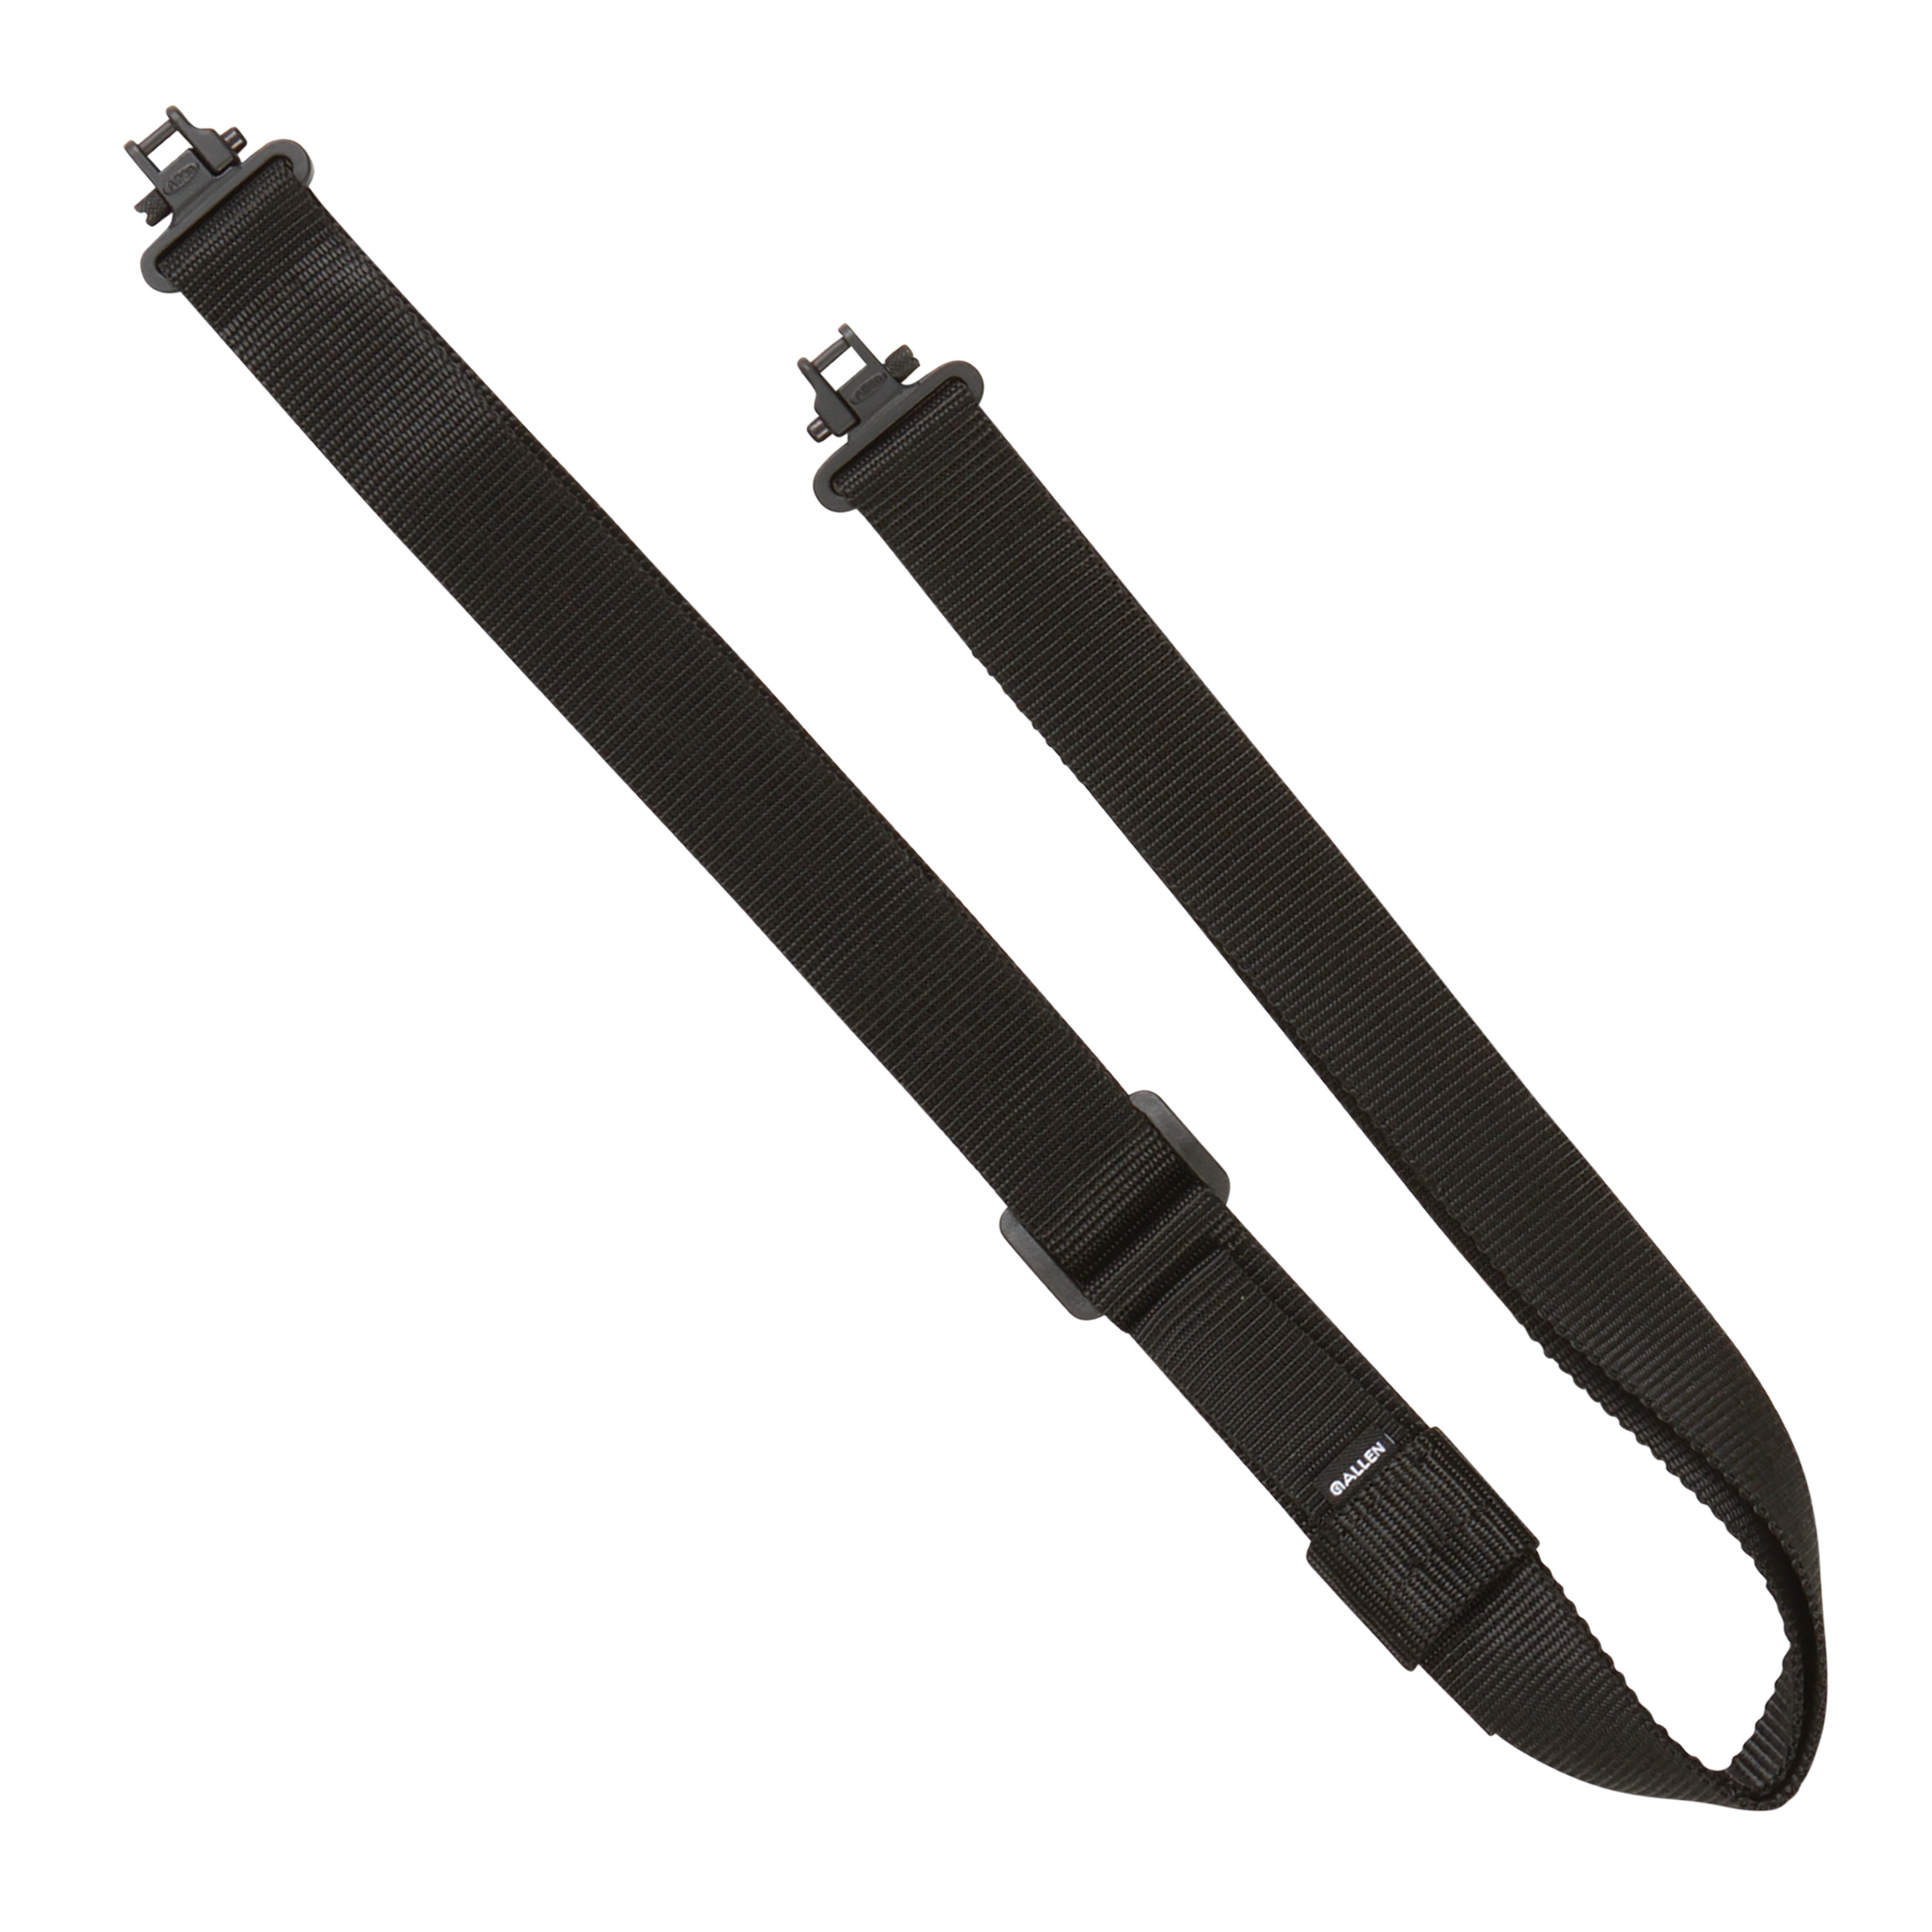 Quick Adjusting Rifle Sling with Swivels, Black